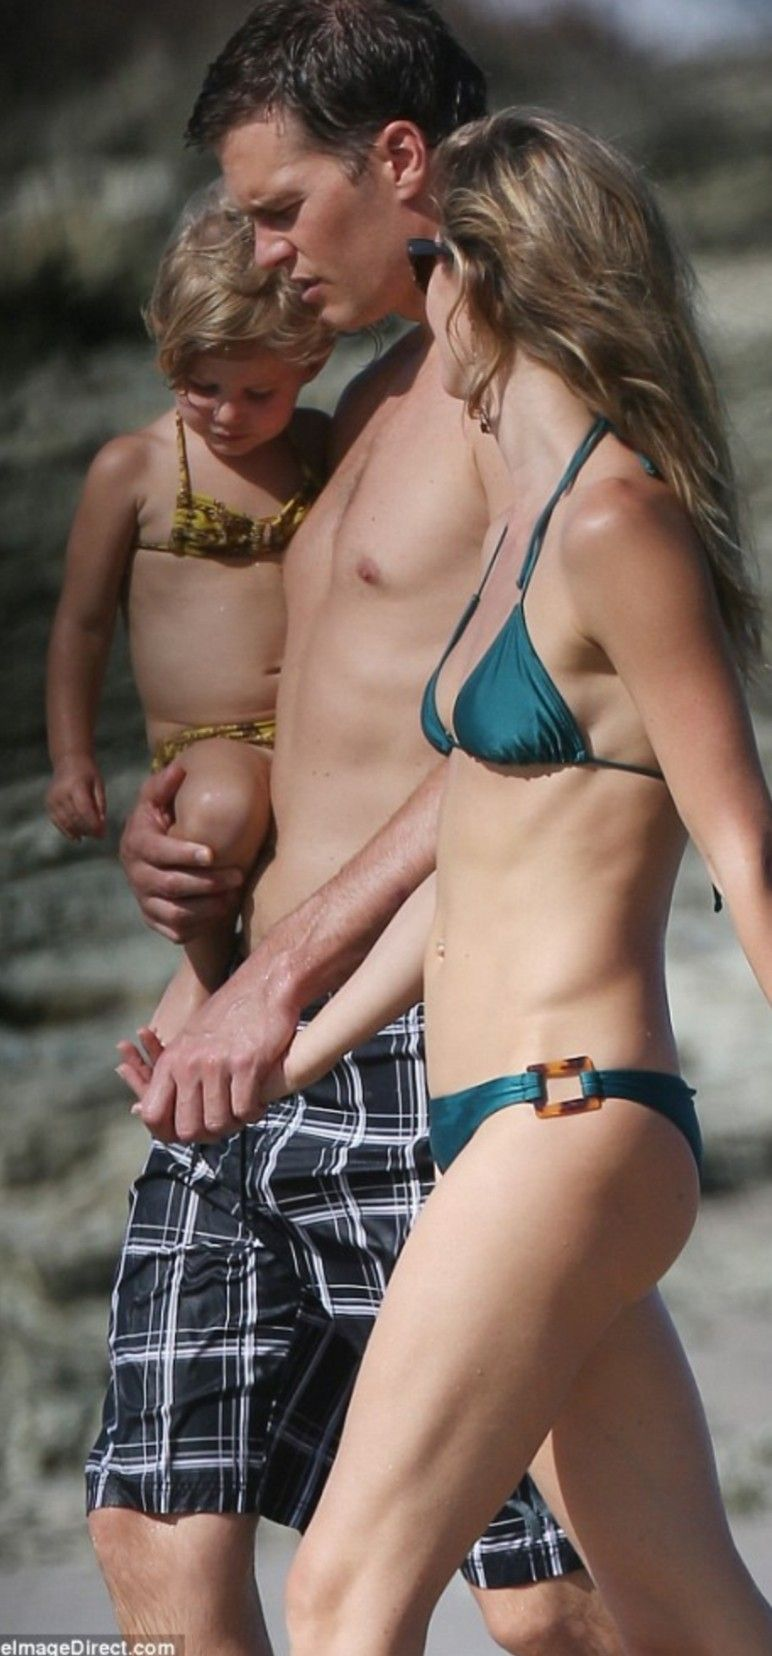 Tom Brady Grabs Gisele Bündchens Booty on the Beach—See Pics of the Hot, Half-Naked Couple!   E! News